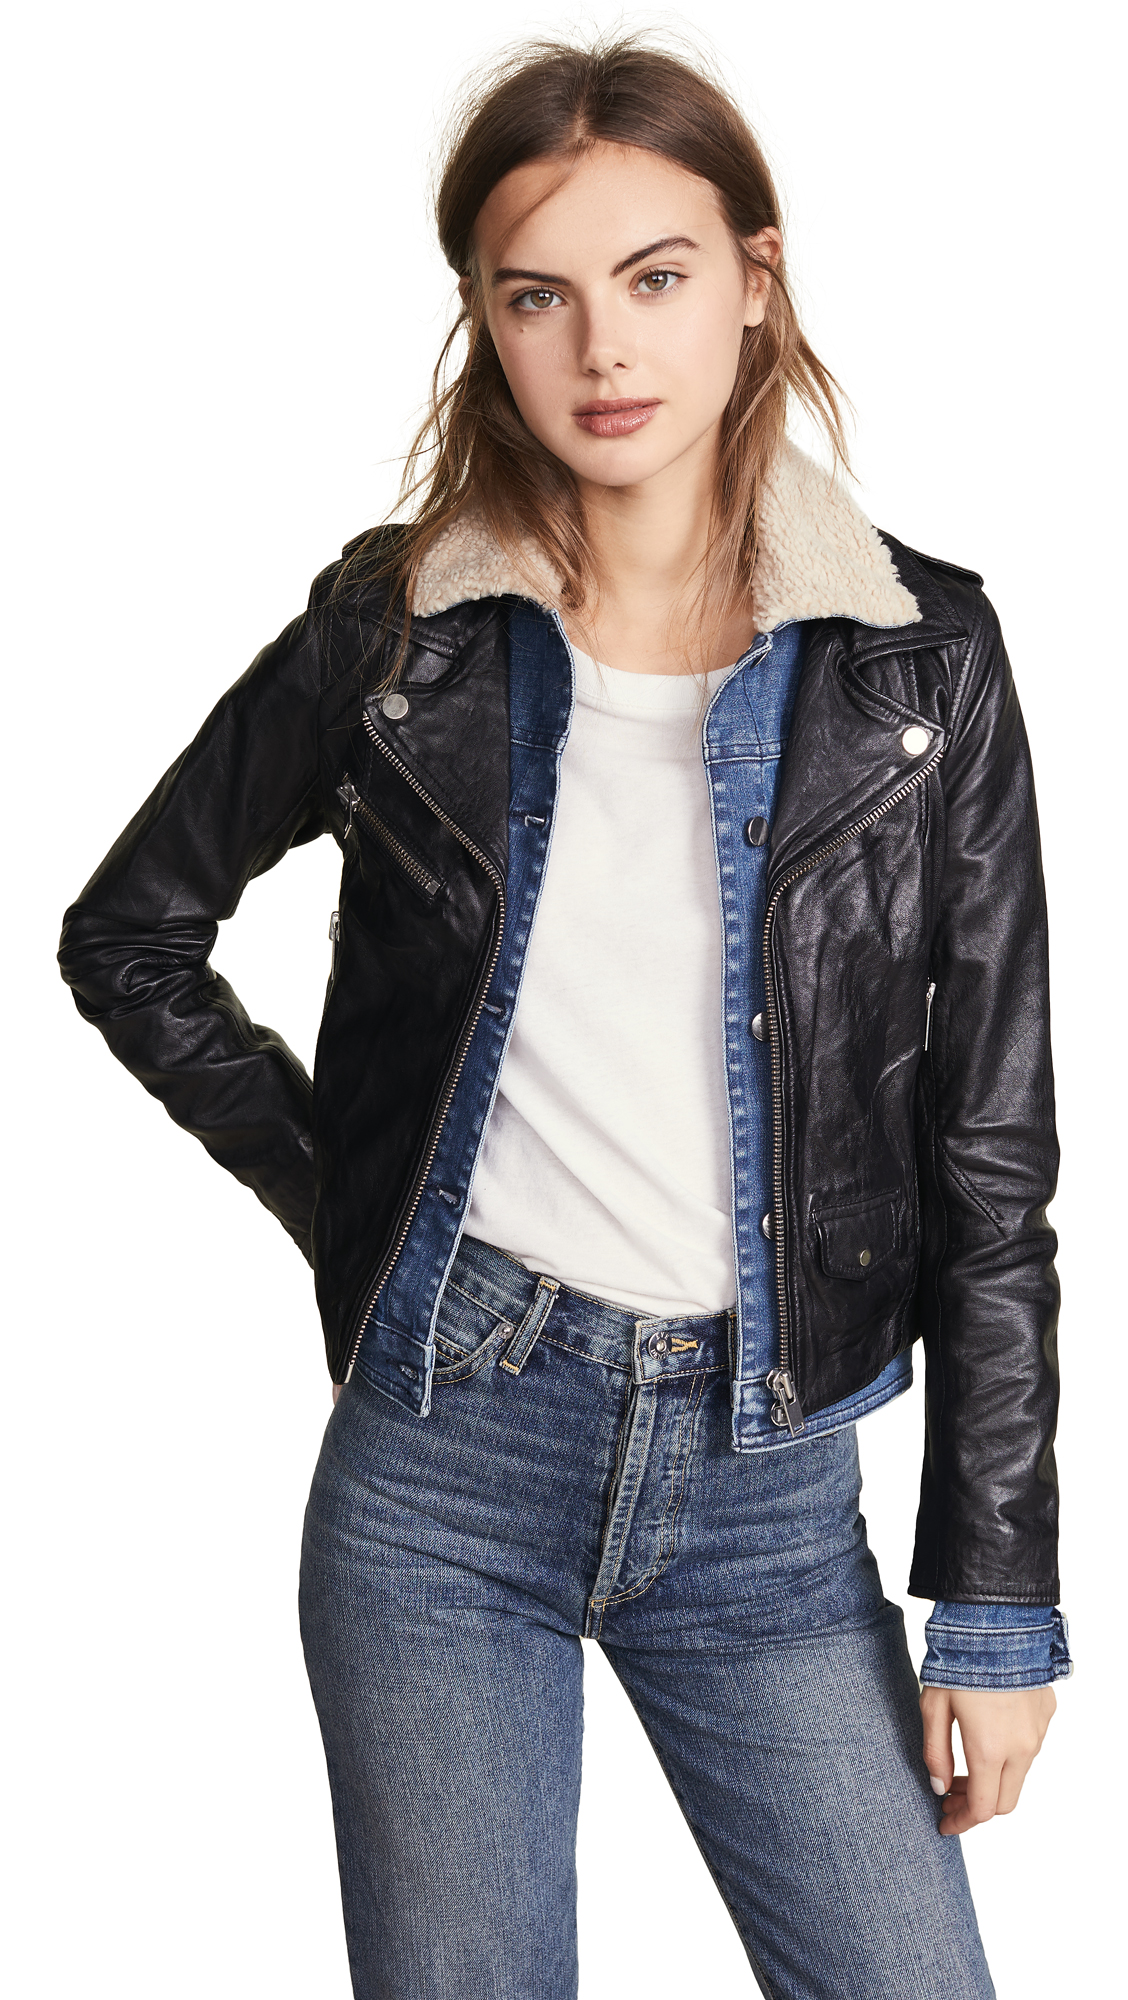 DOMA Sherpa Denim & Leather Jacket in Black